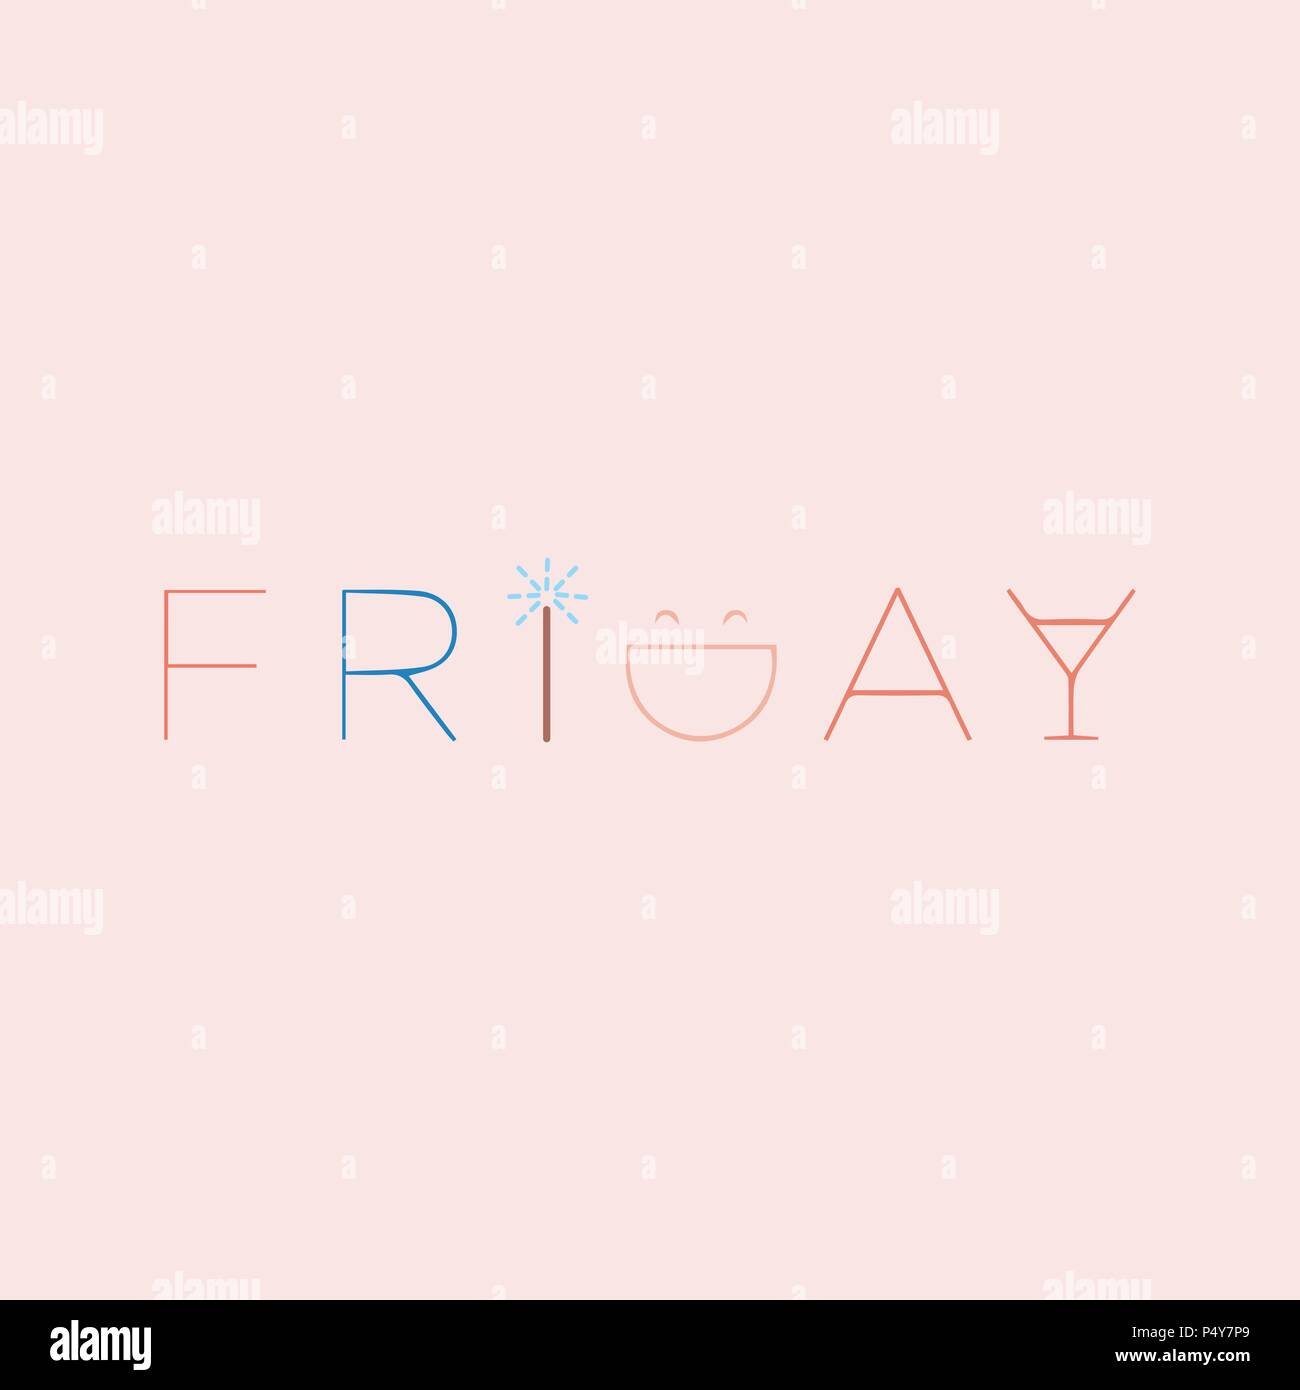 Friday Beautiful lettering. Vector illustration of the text. Gentle pink background. - Stock Vector